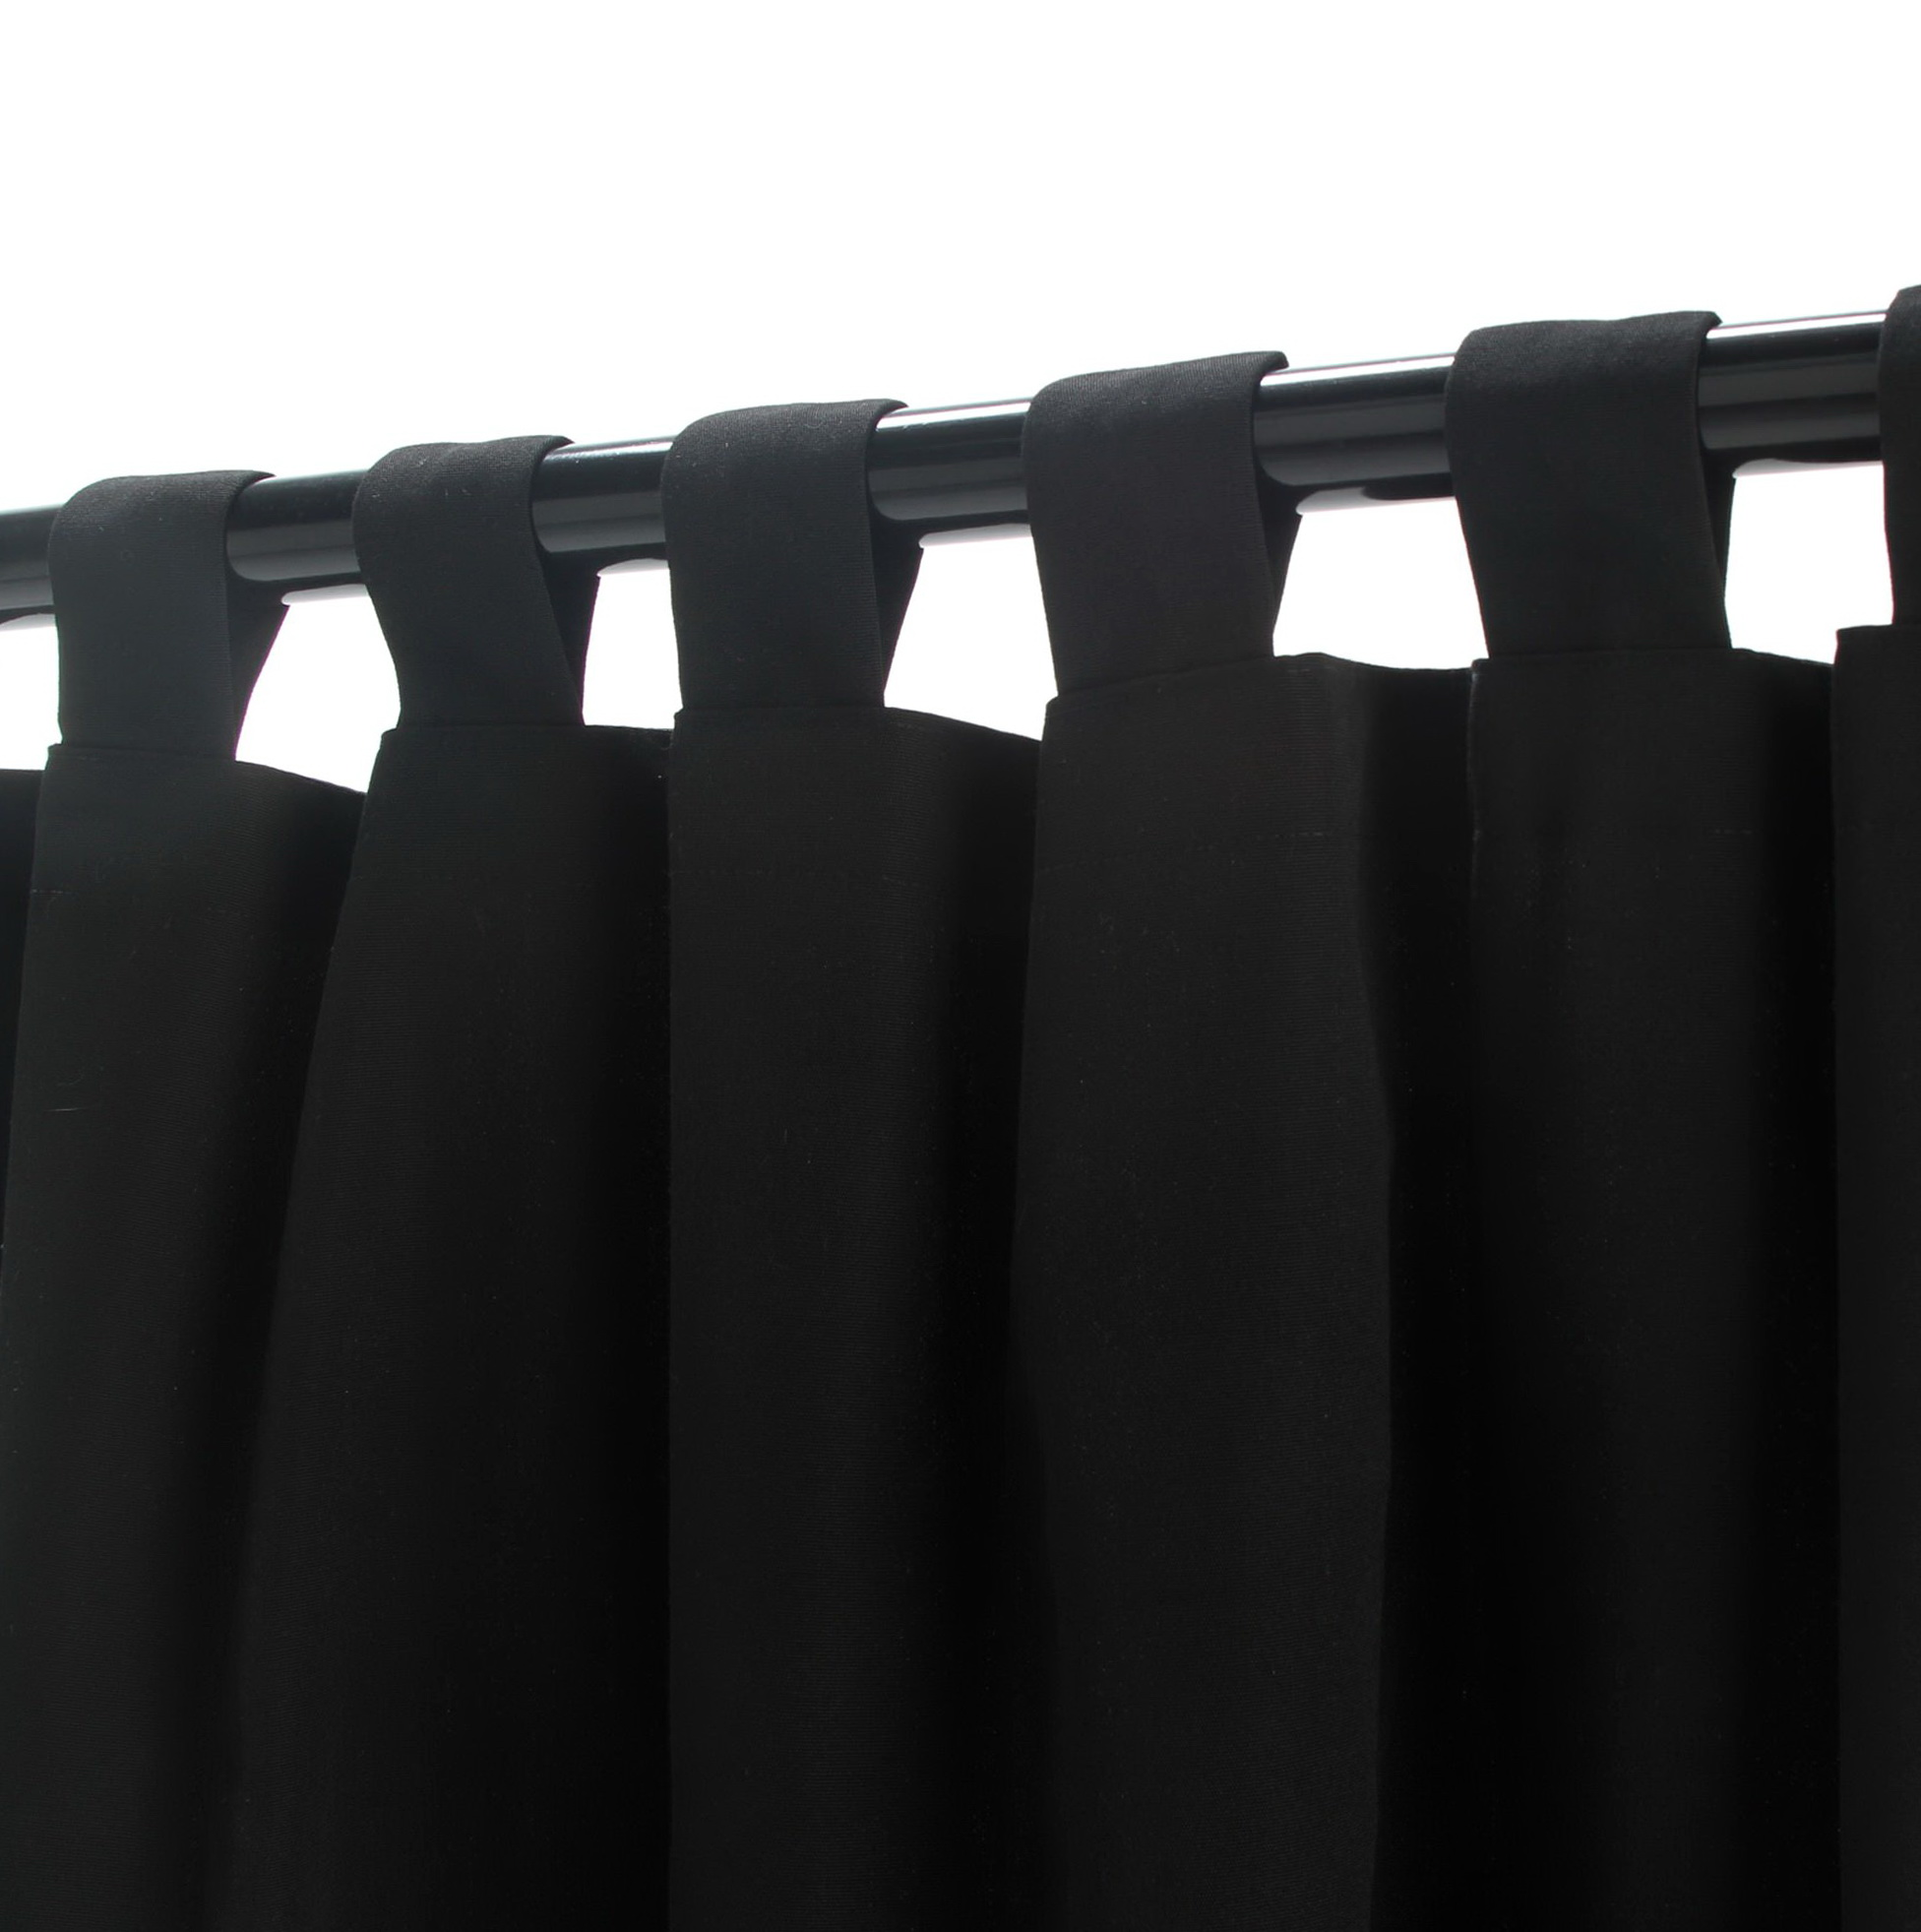 cm zero black panel theater awesome curtains curtain of pair green home velvet grey full design inspirational sanela absolute size blackout